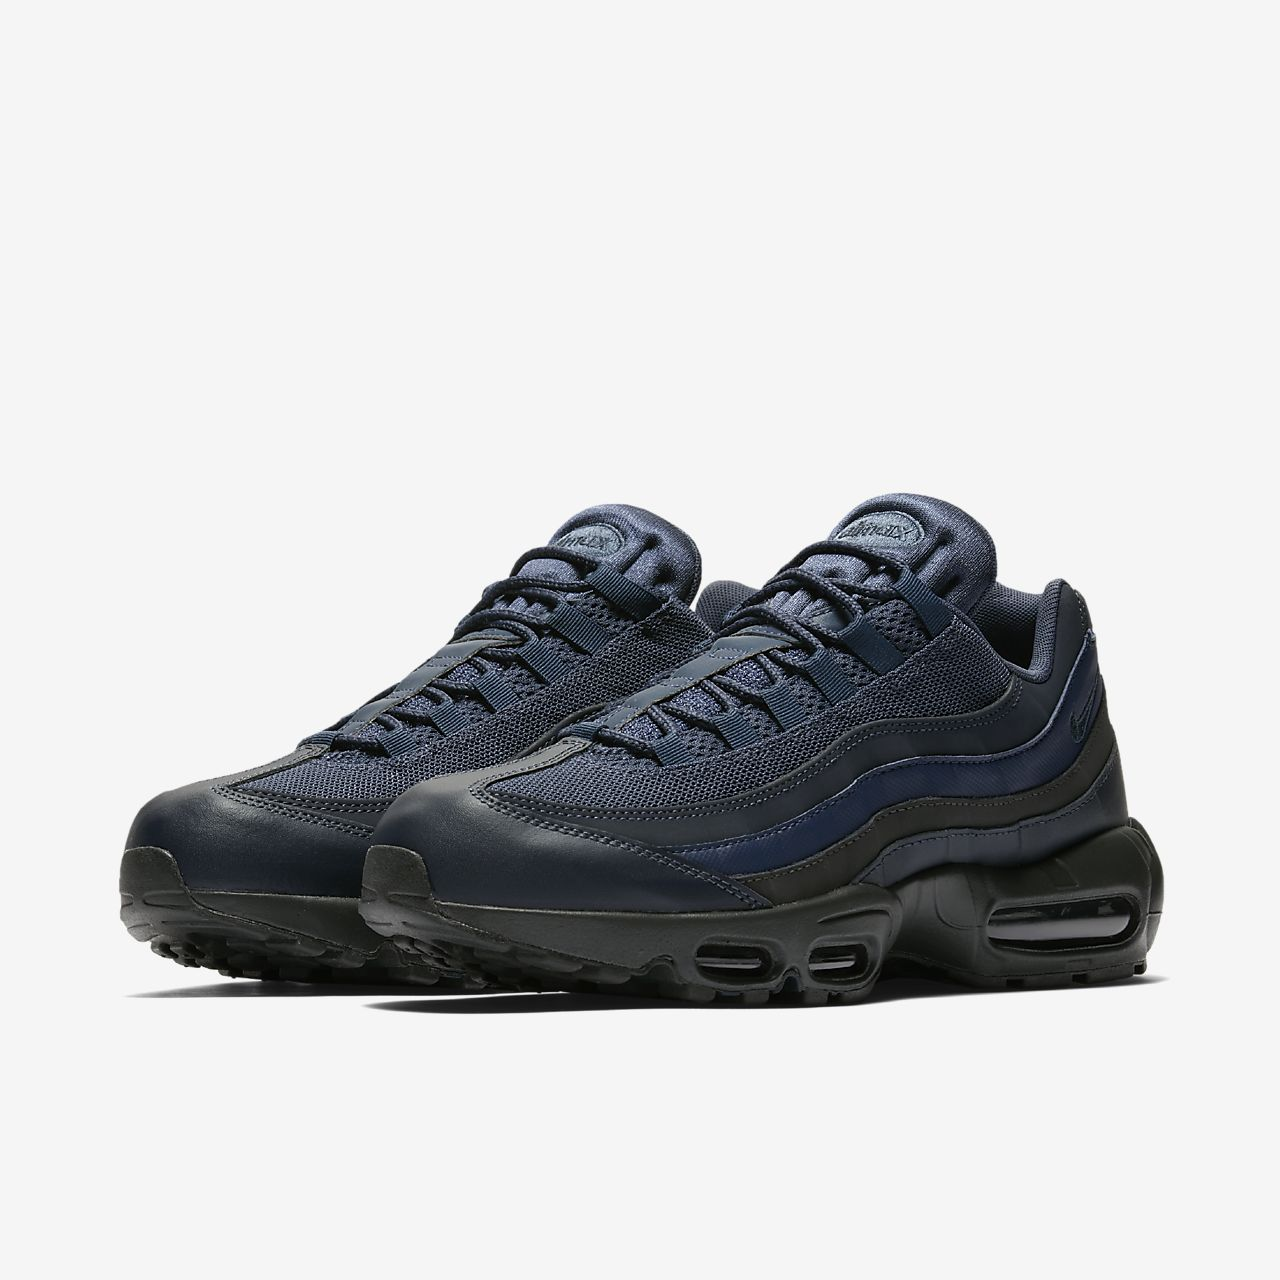 innovative design bb2f5 cbee3 Men s Shoe. Nike Air Max 95 Essential